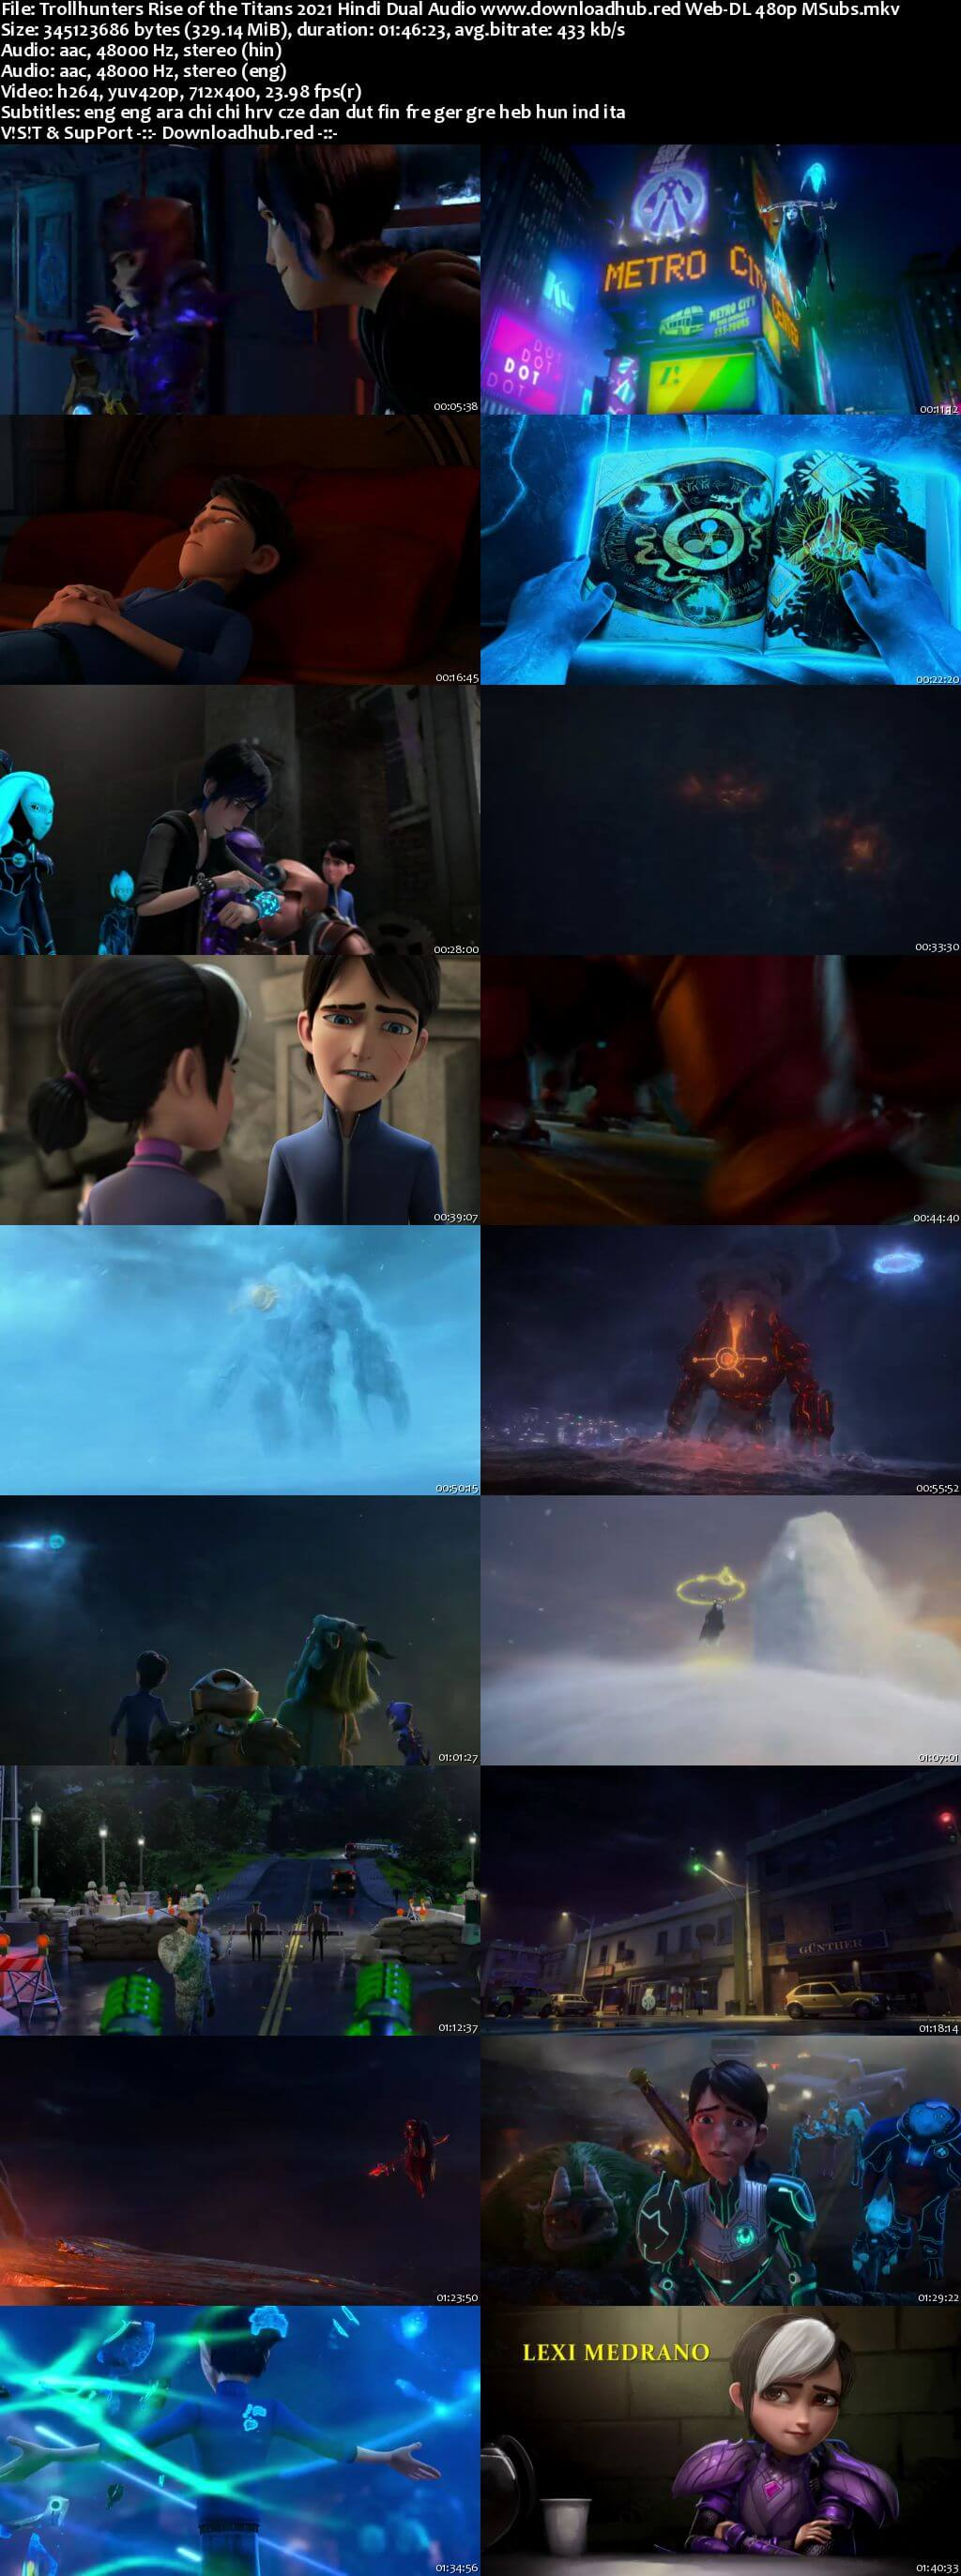 Trollhunters Rise of the Titans 2021 Hindi Dual Audio 300MB Web-DL 480p MSubs